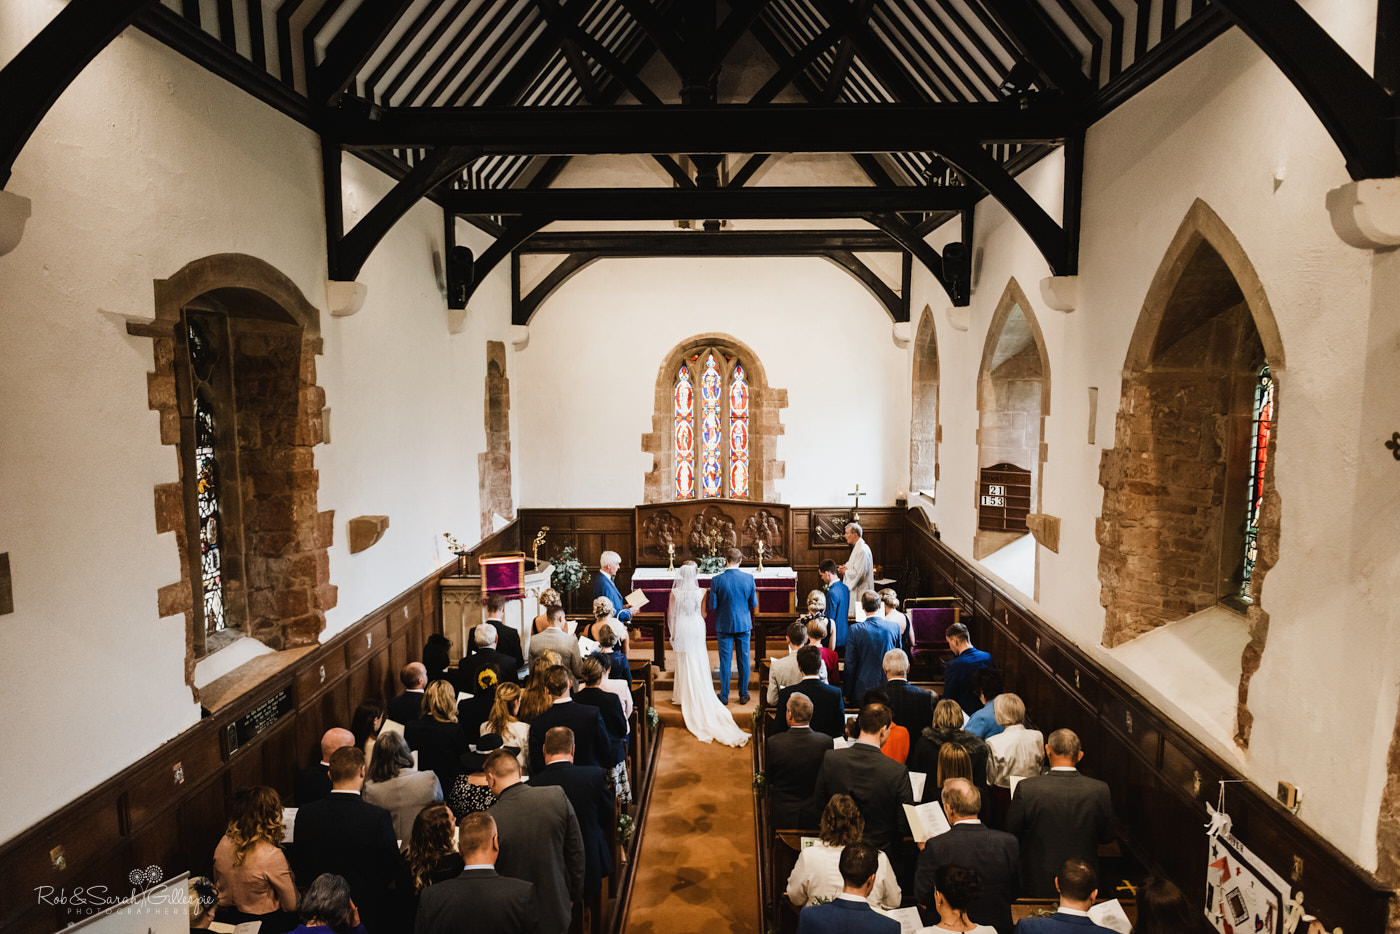 Wedding service at St Kenelm's church in Worcestershire